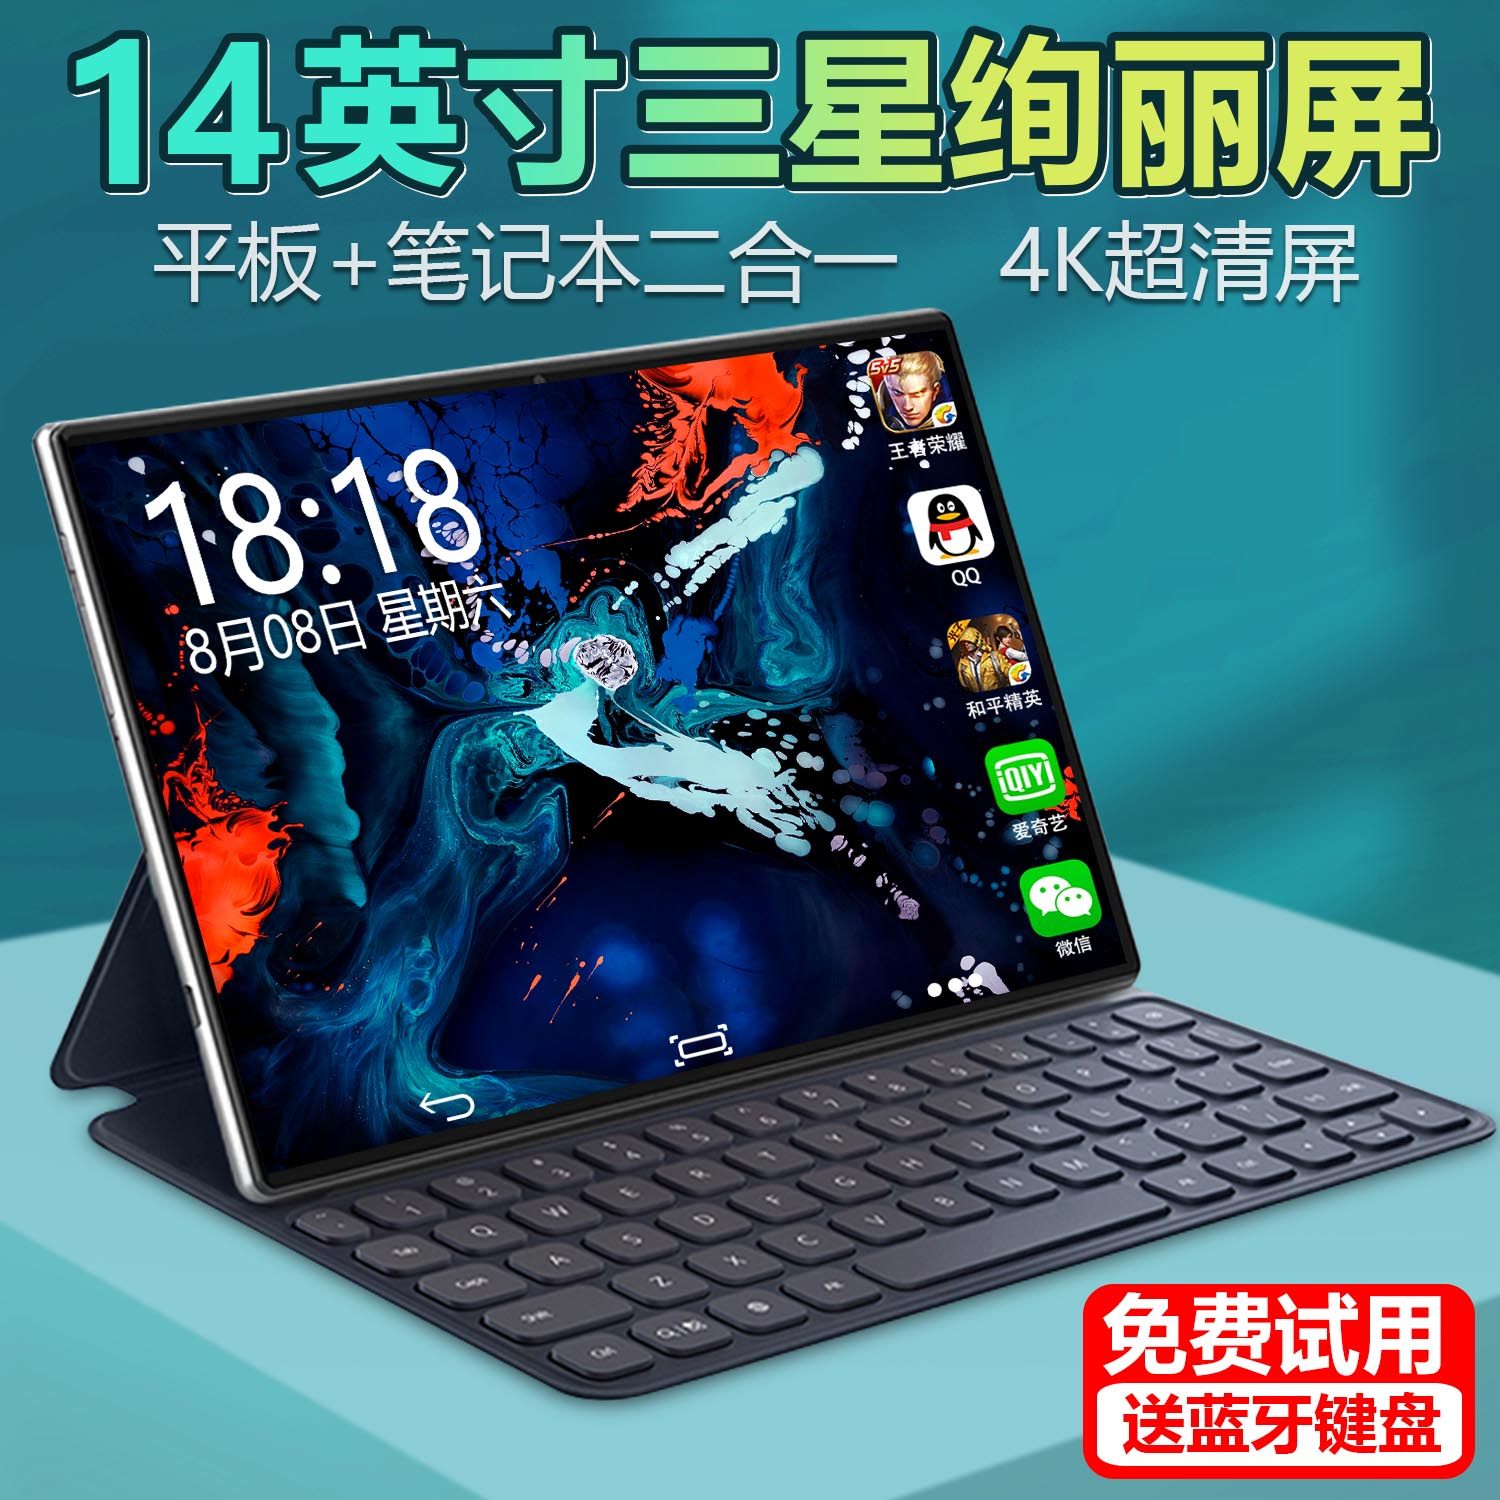 2020 new Xiaomi pie ipad tablet 13-inch full Netcom 5G two-in-one Samsung screen office entertainment game for Apple Huawei smart student learning machine official authentic